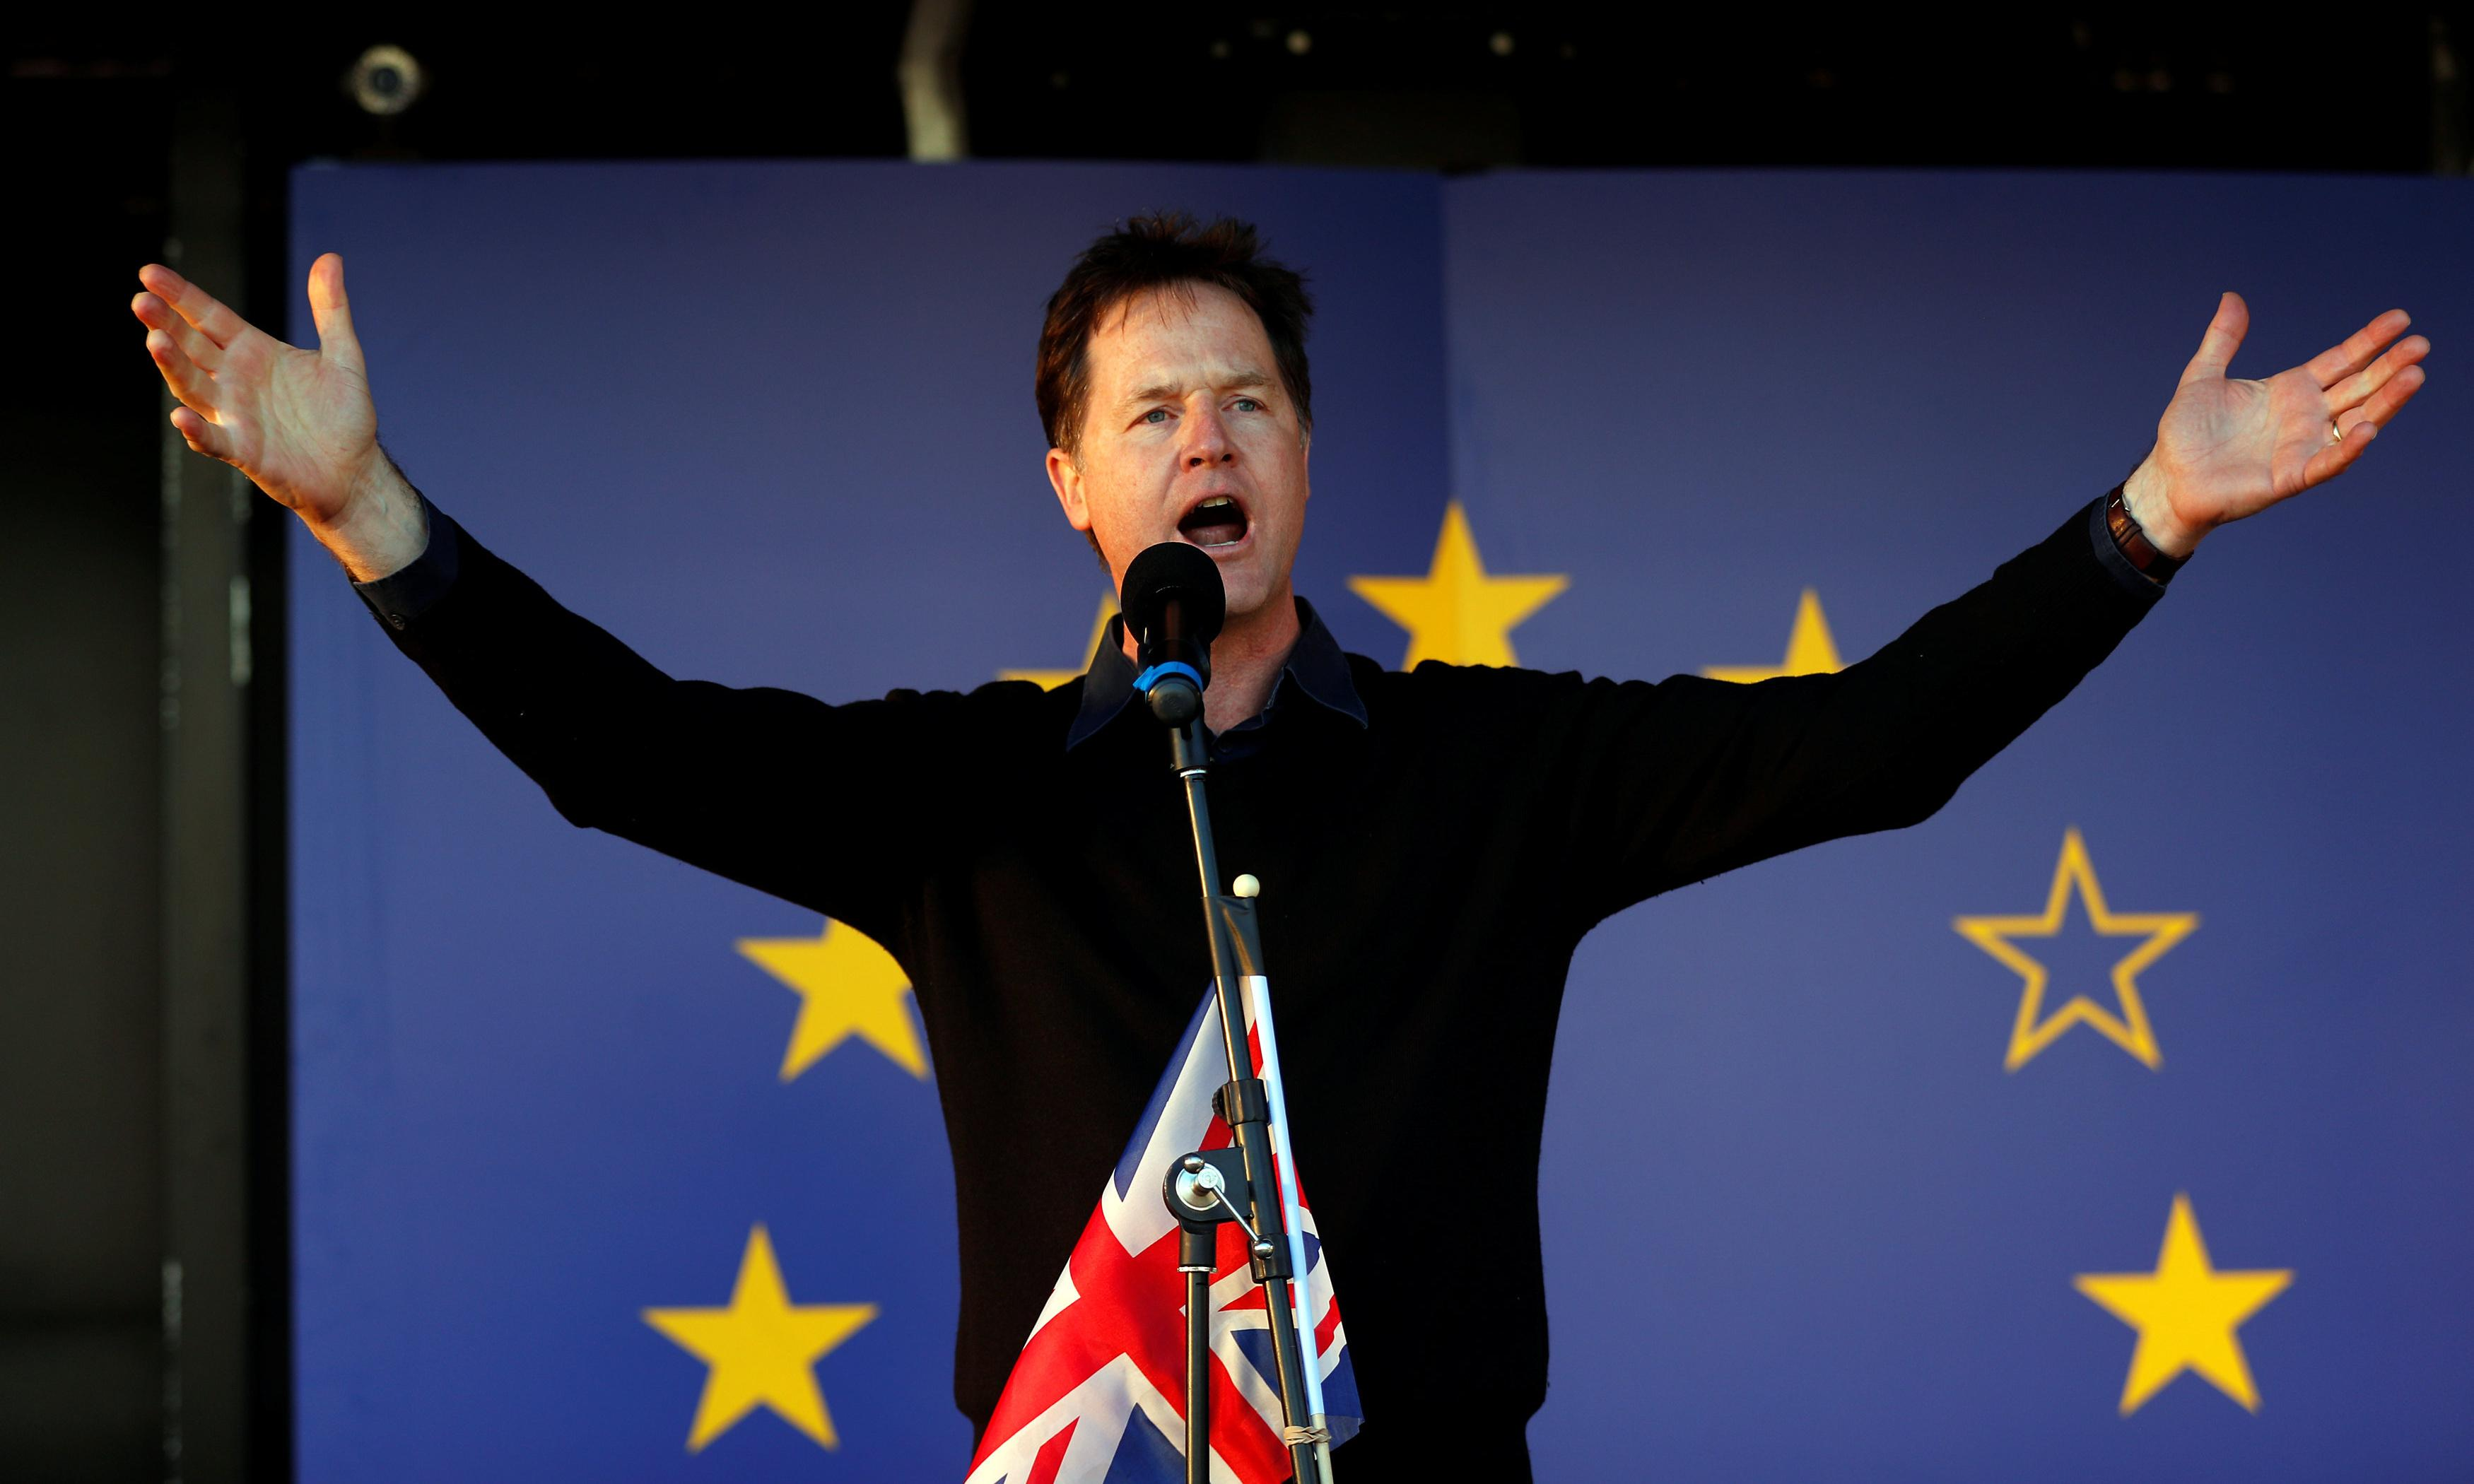 Nick Clegg's second act is a tragic loss of face